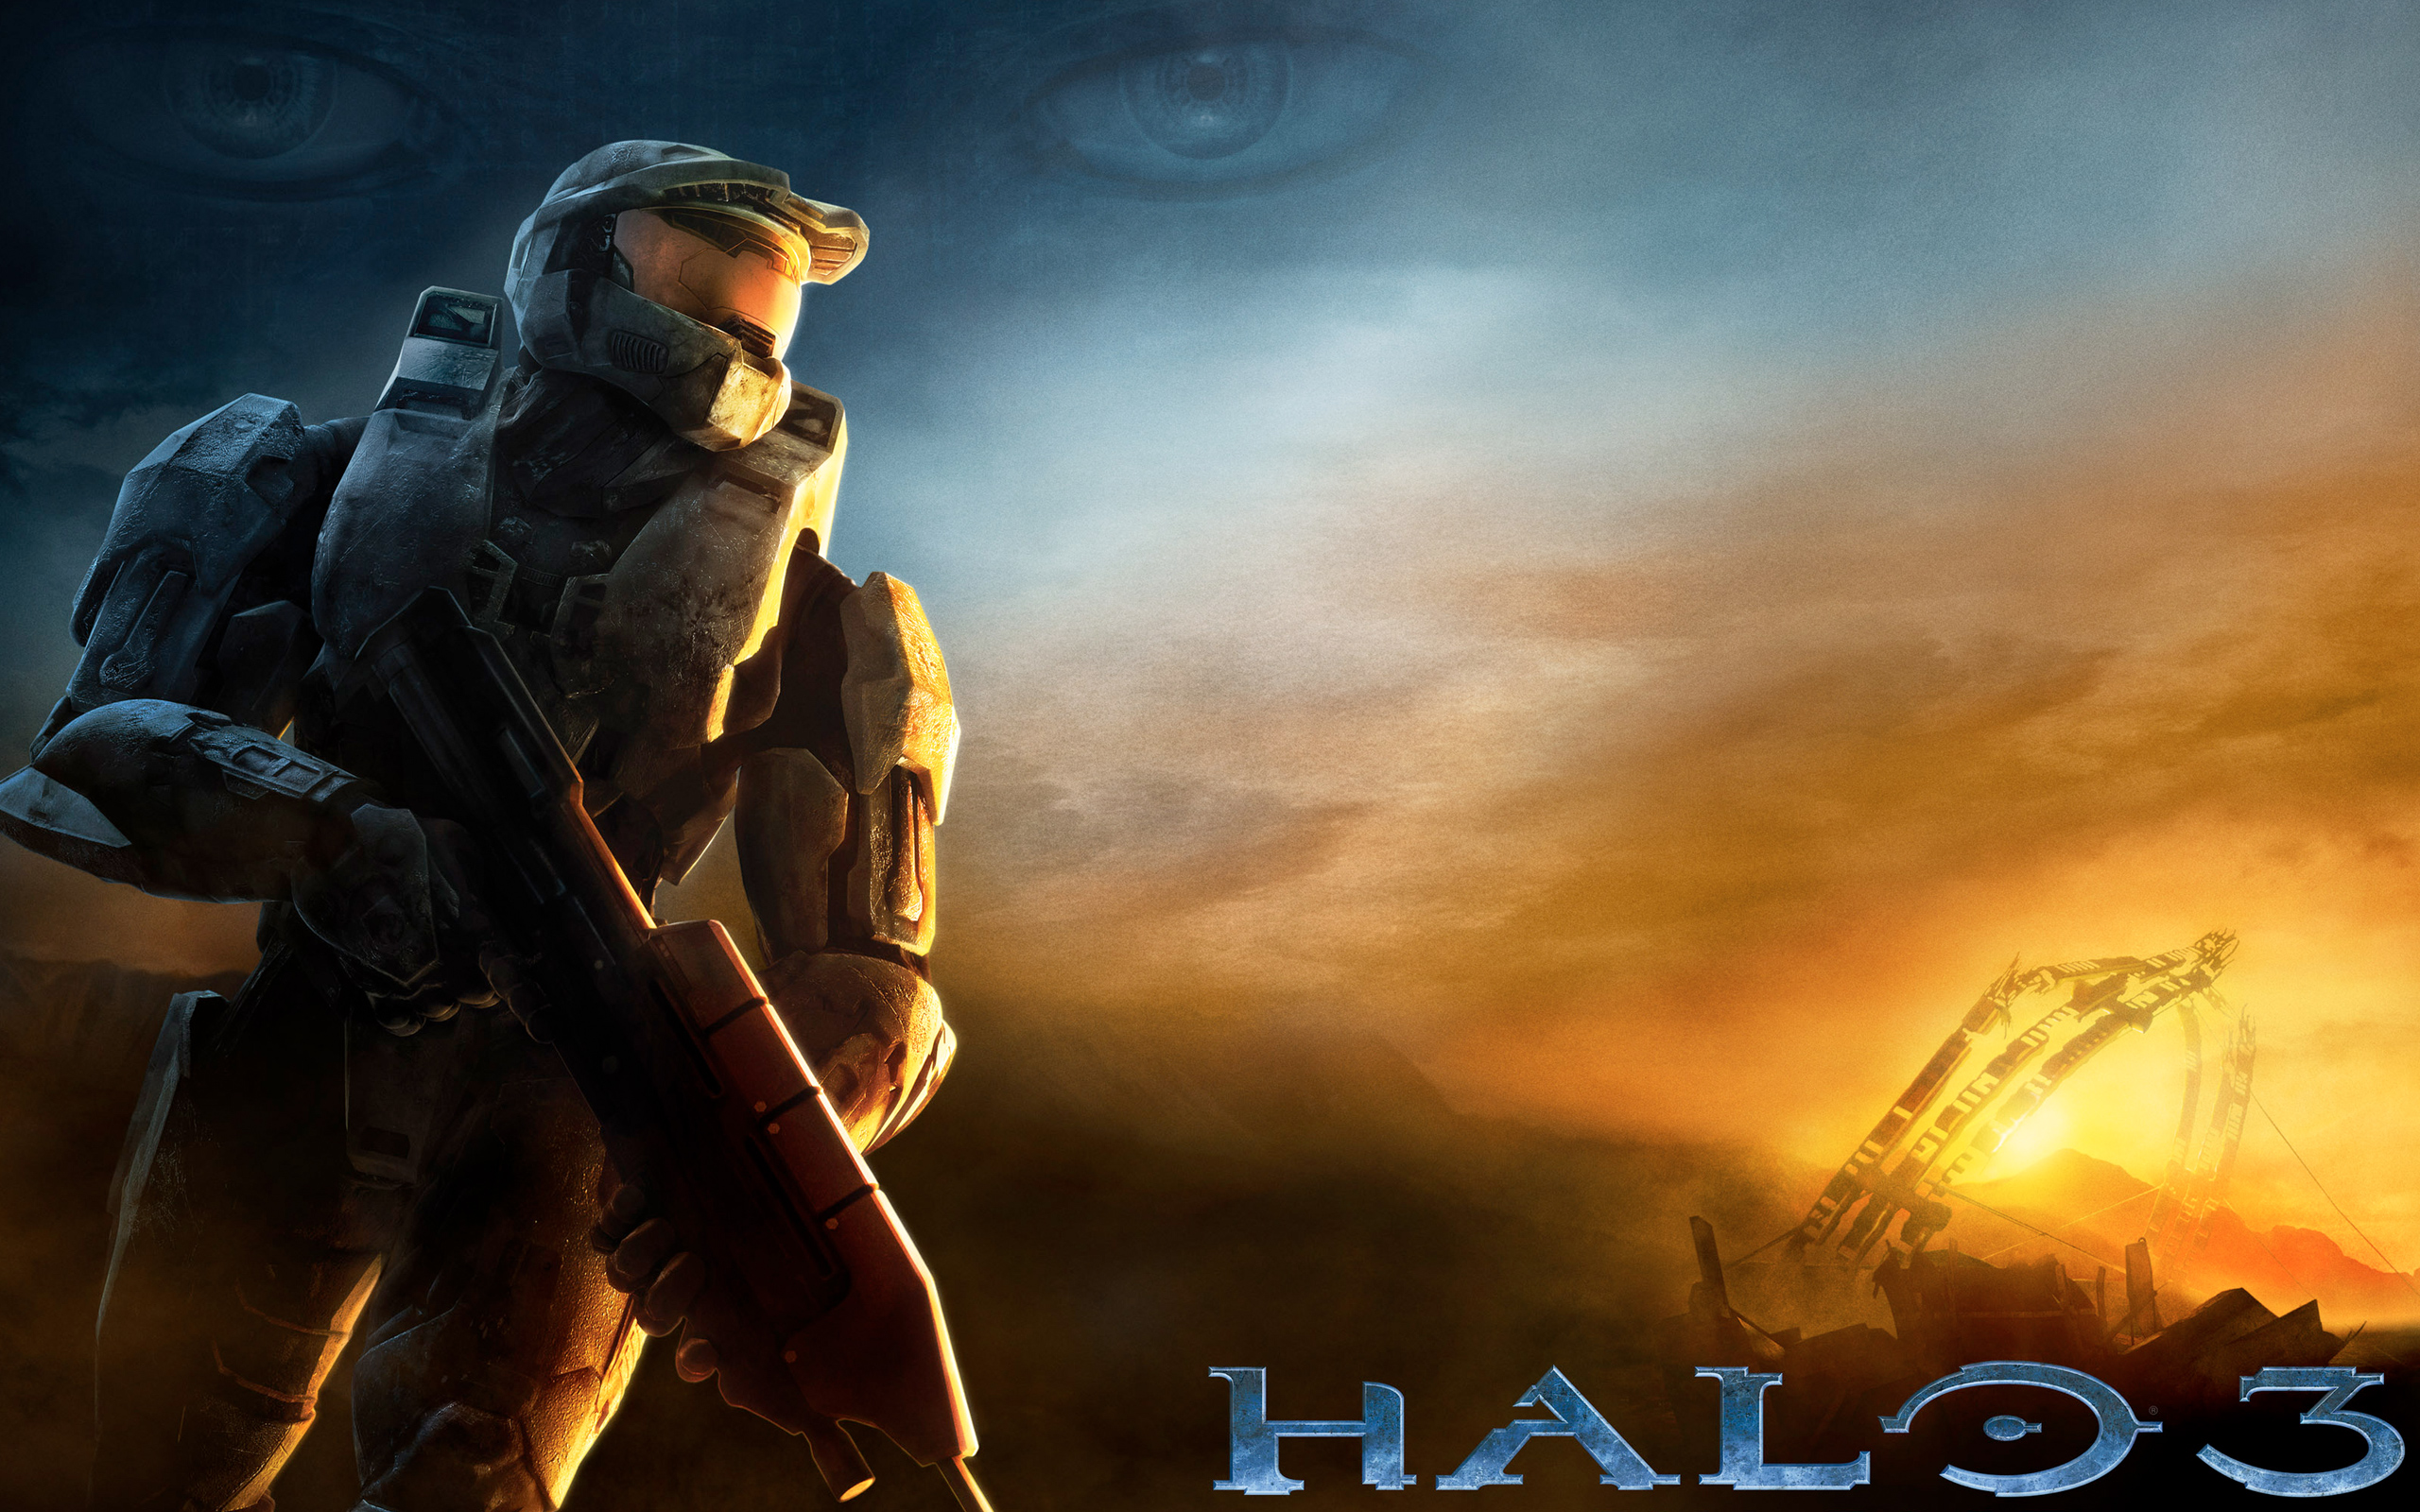 HALO 3 Game 556.44 Kb